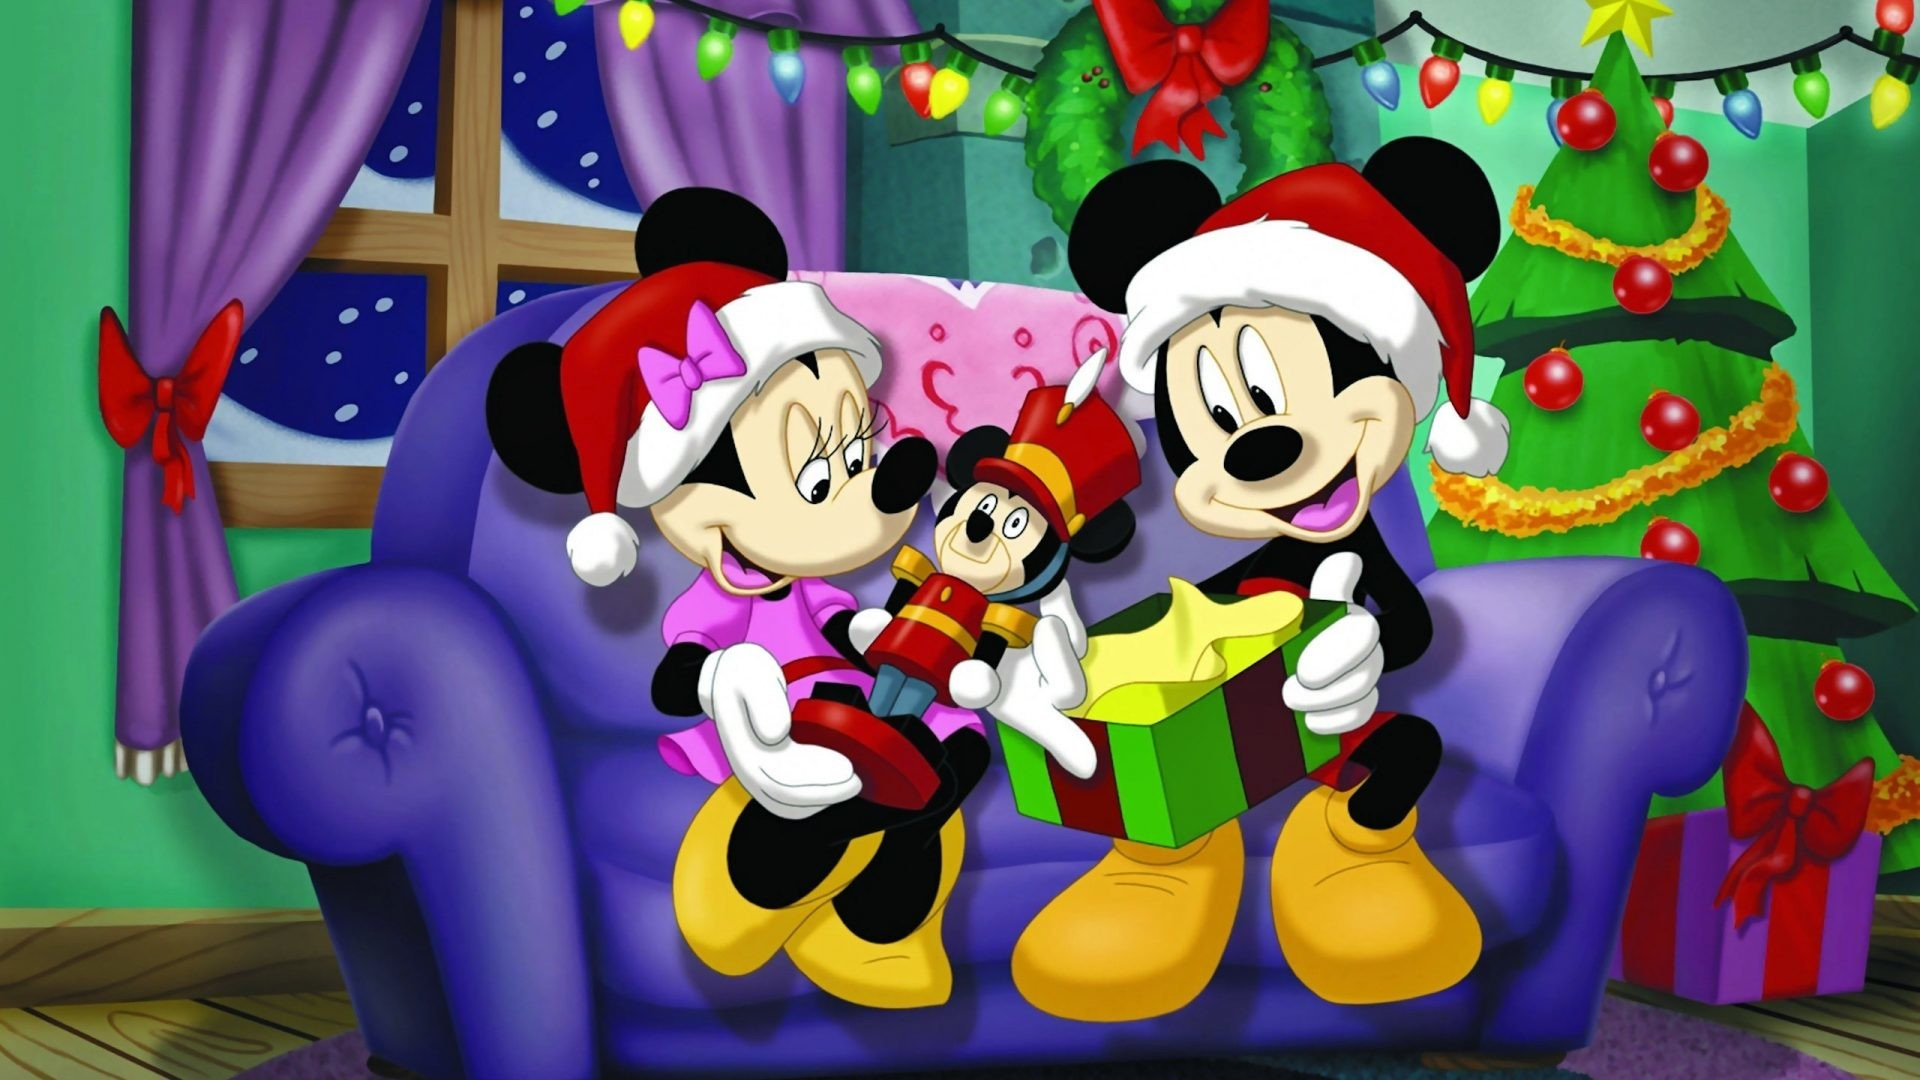 1920x1080 ... wallpapers for mobile; mickey mouse and minnie mouse christmas gifts  desktop background ...